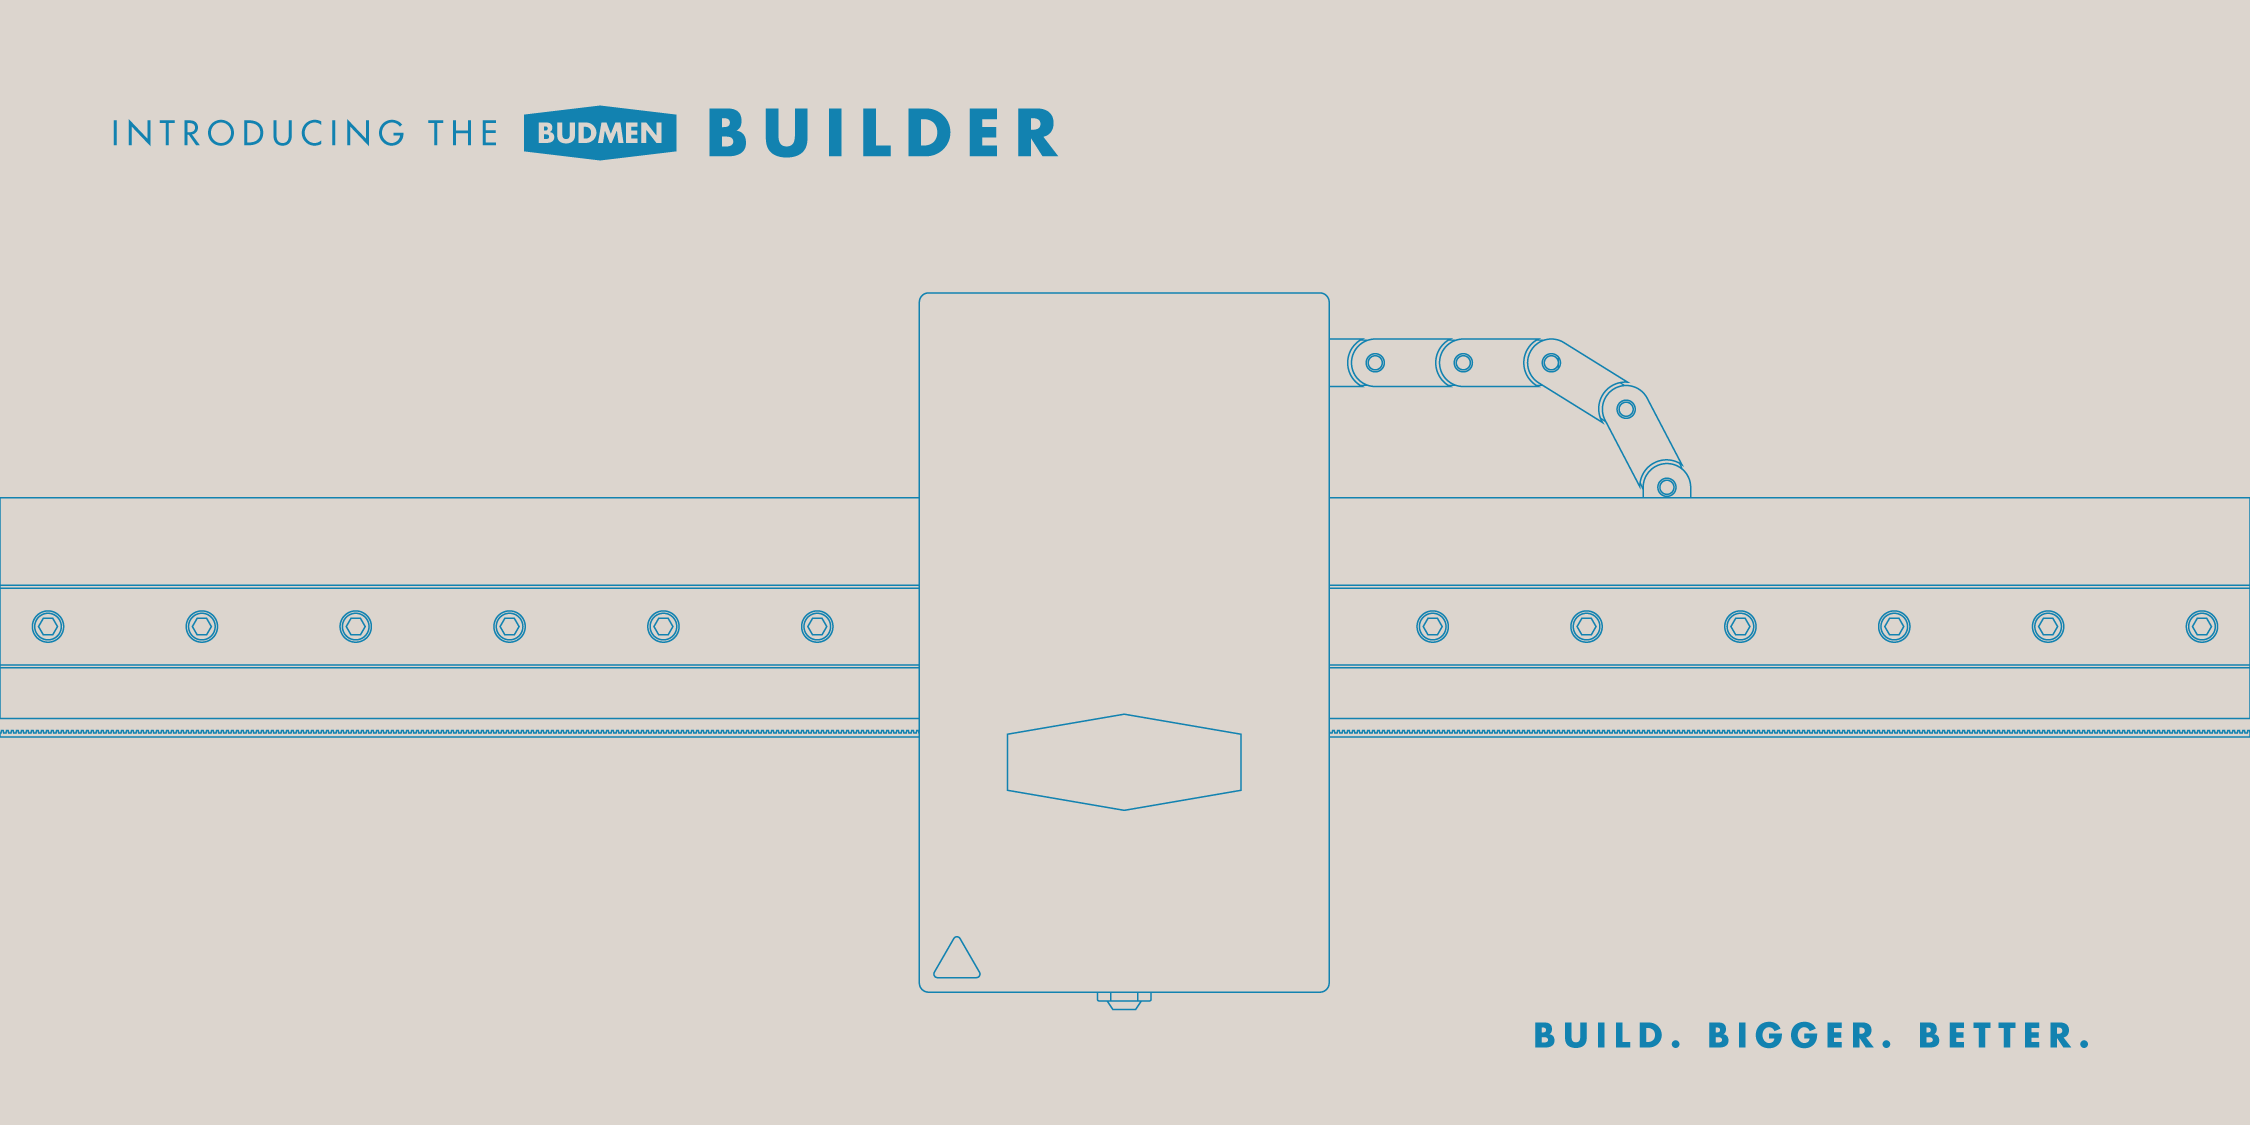 Introducing Budmen BUILDER